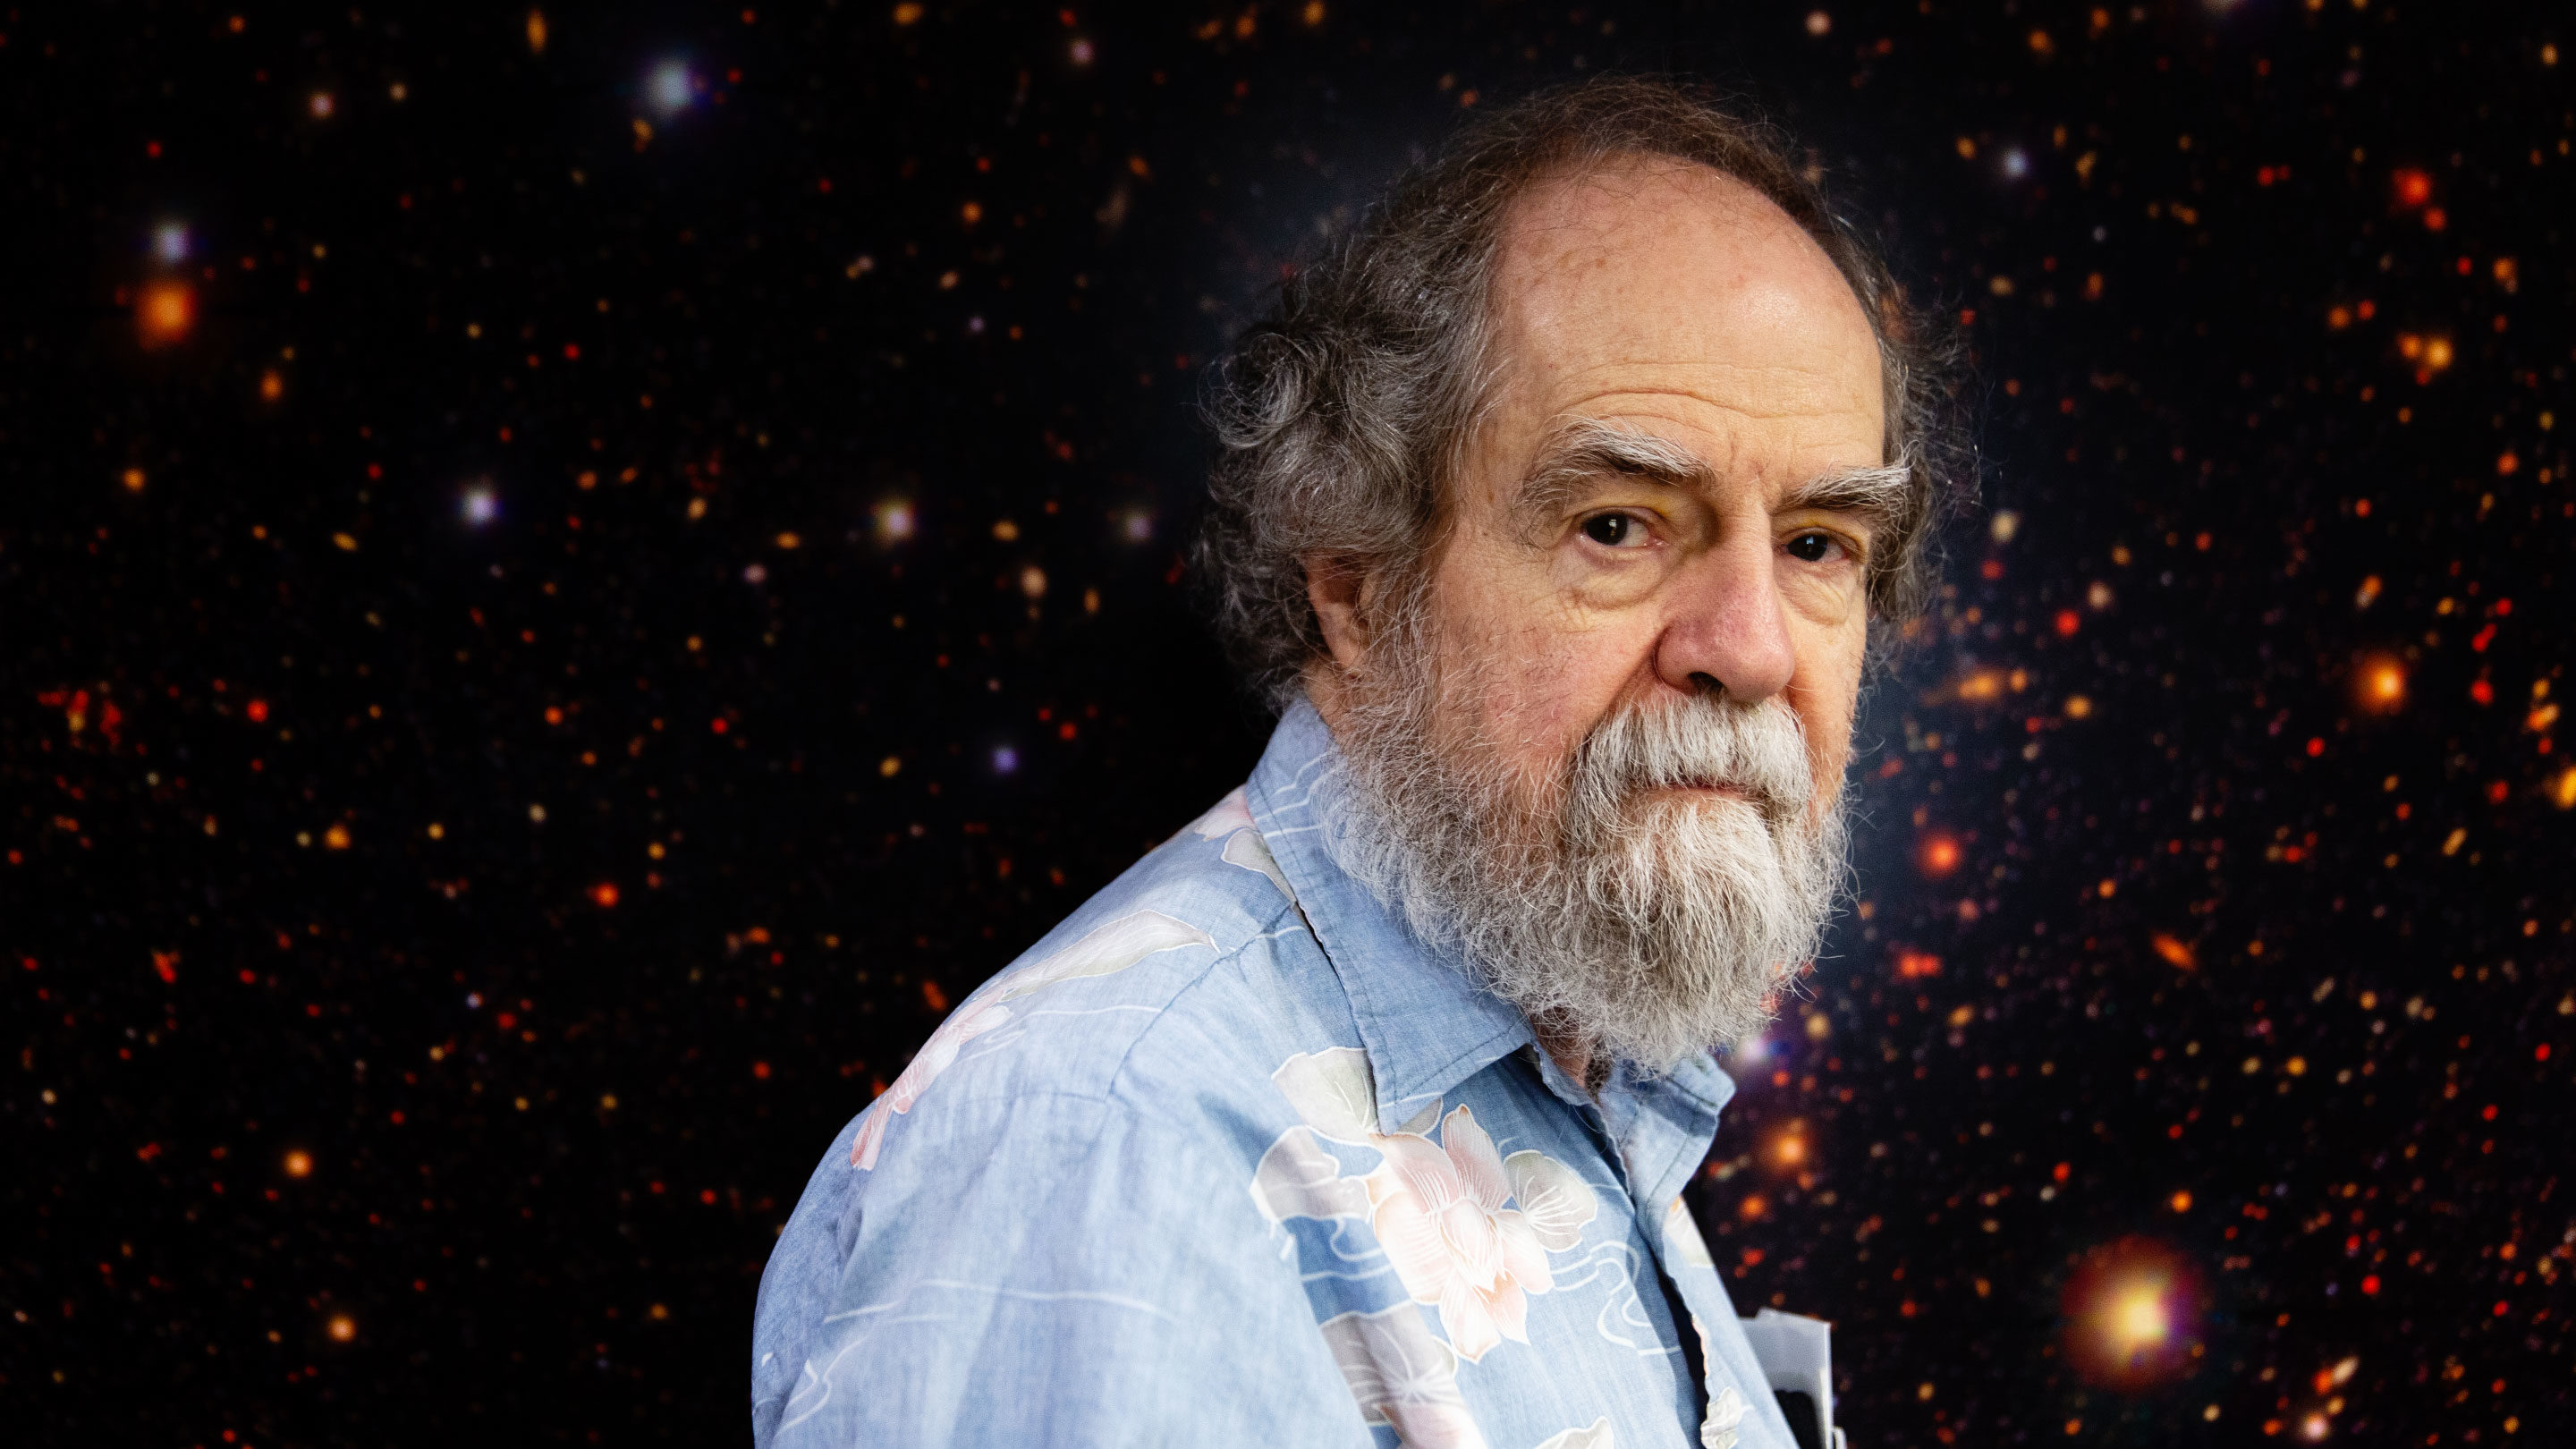 The Astronomer Who'd Rather Build Space Cameras